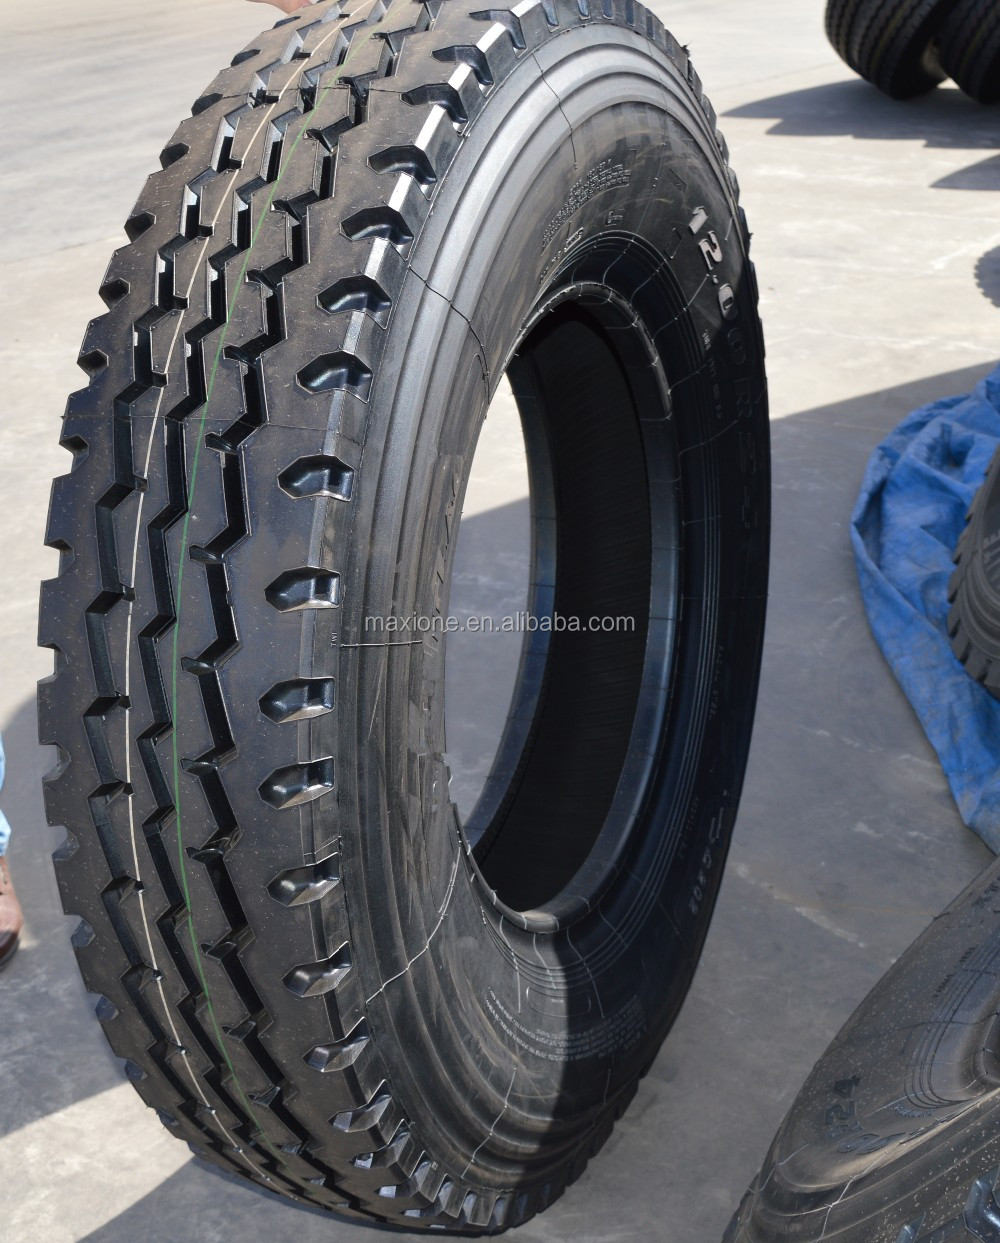 tires 31580r 225 tires 31580r 225 suppliers and at alibabacom